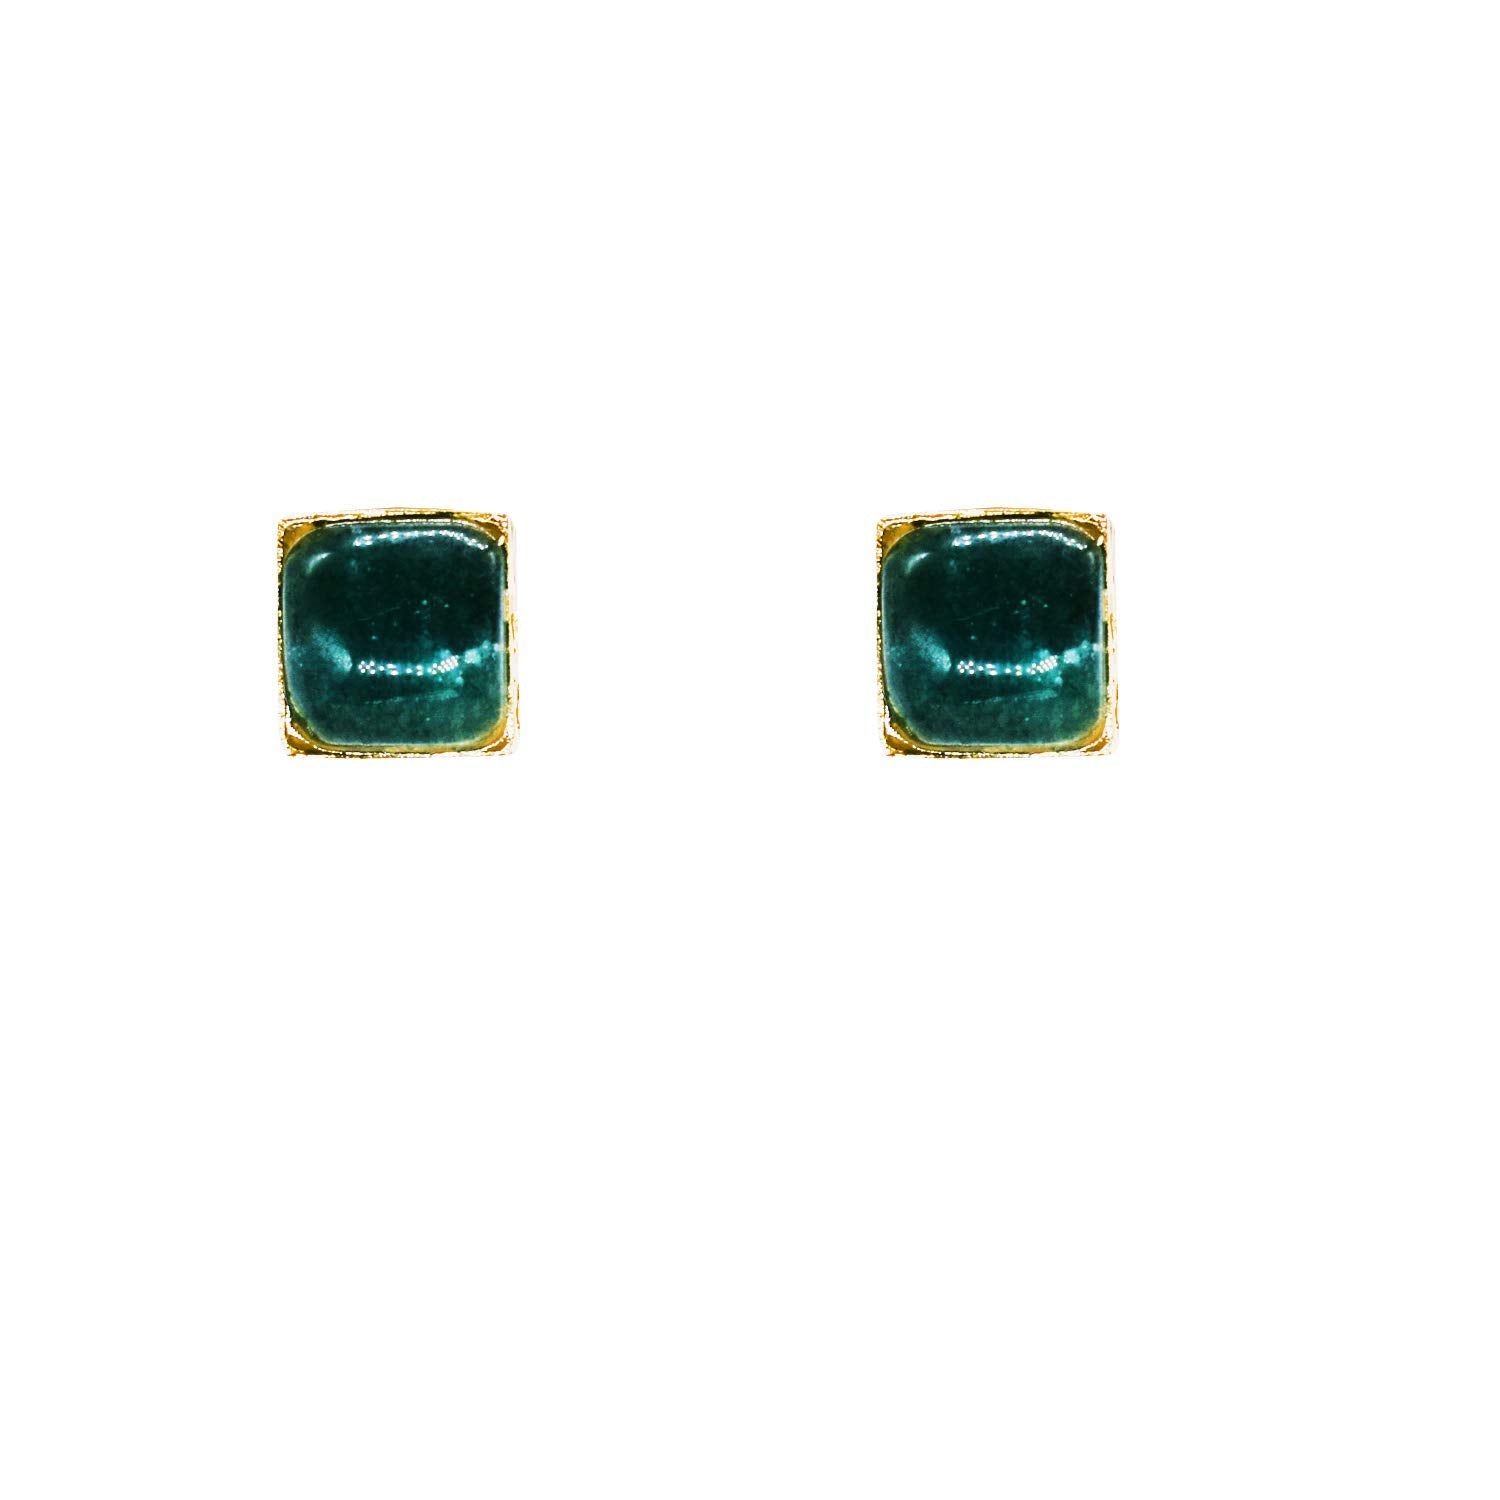 Stone Studded Square Shape Stud Earrings - Bagaholics Gift